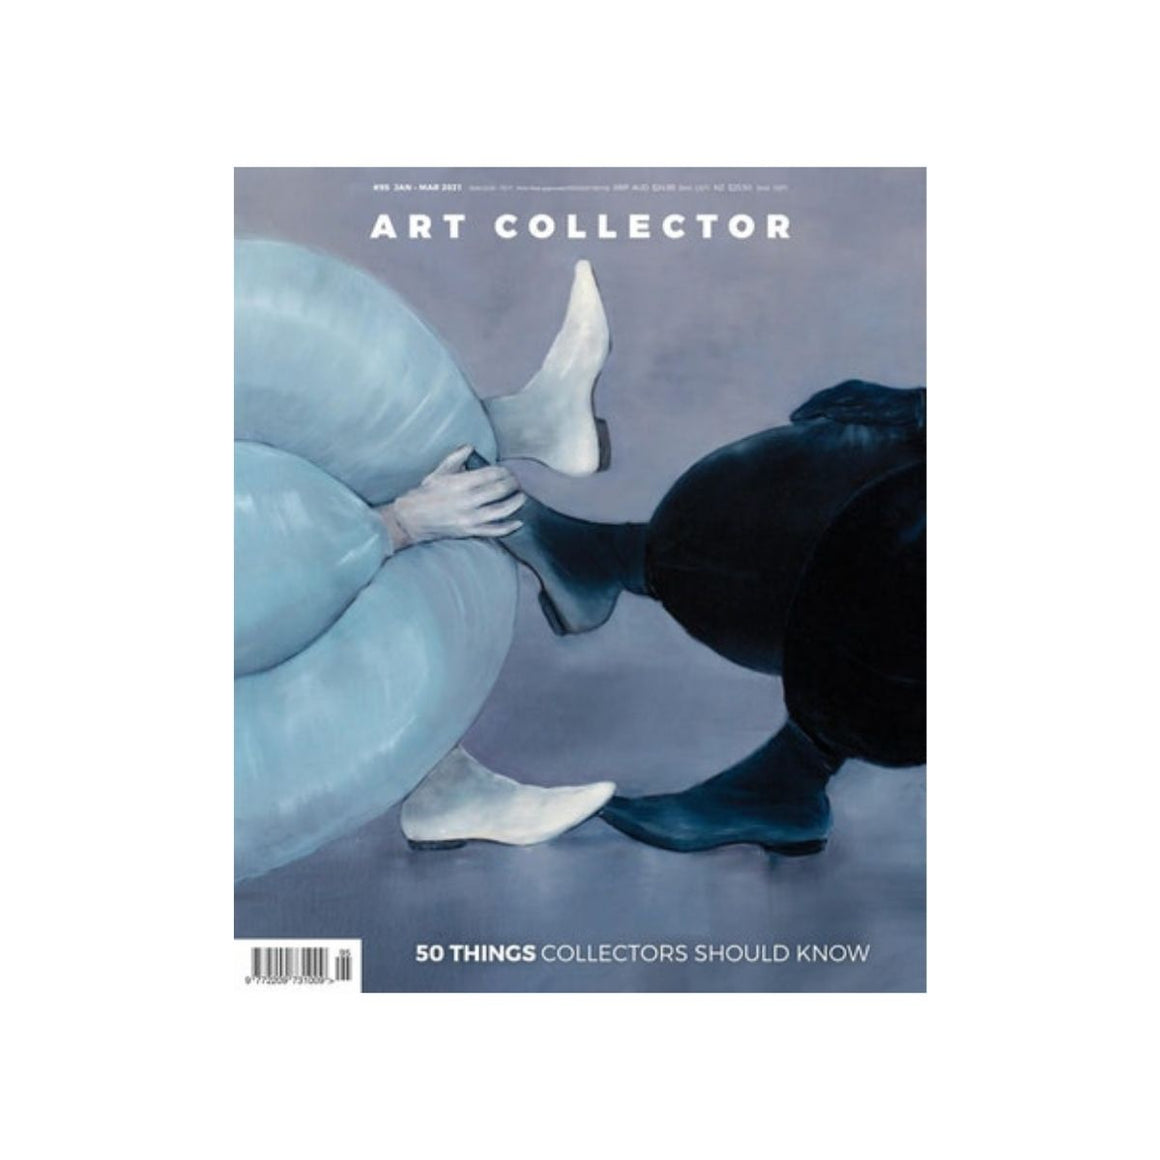 Magazine cover featuring a painting by Jelena Telecki which includes two pairs of legs one on the left is wearing white pants, gloves and shoes and the character on the right hand side is wearing black pants, gloves and shoes